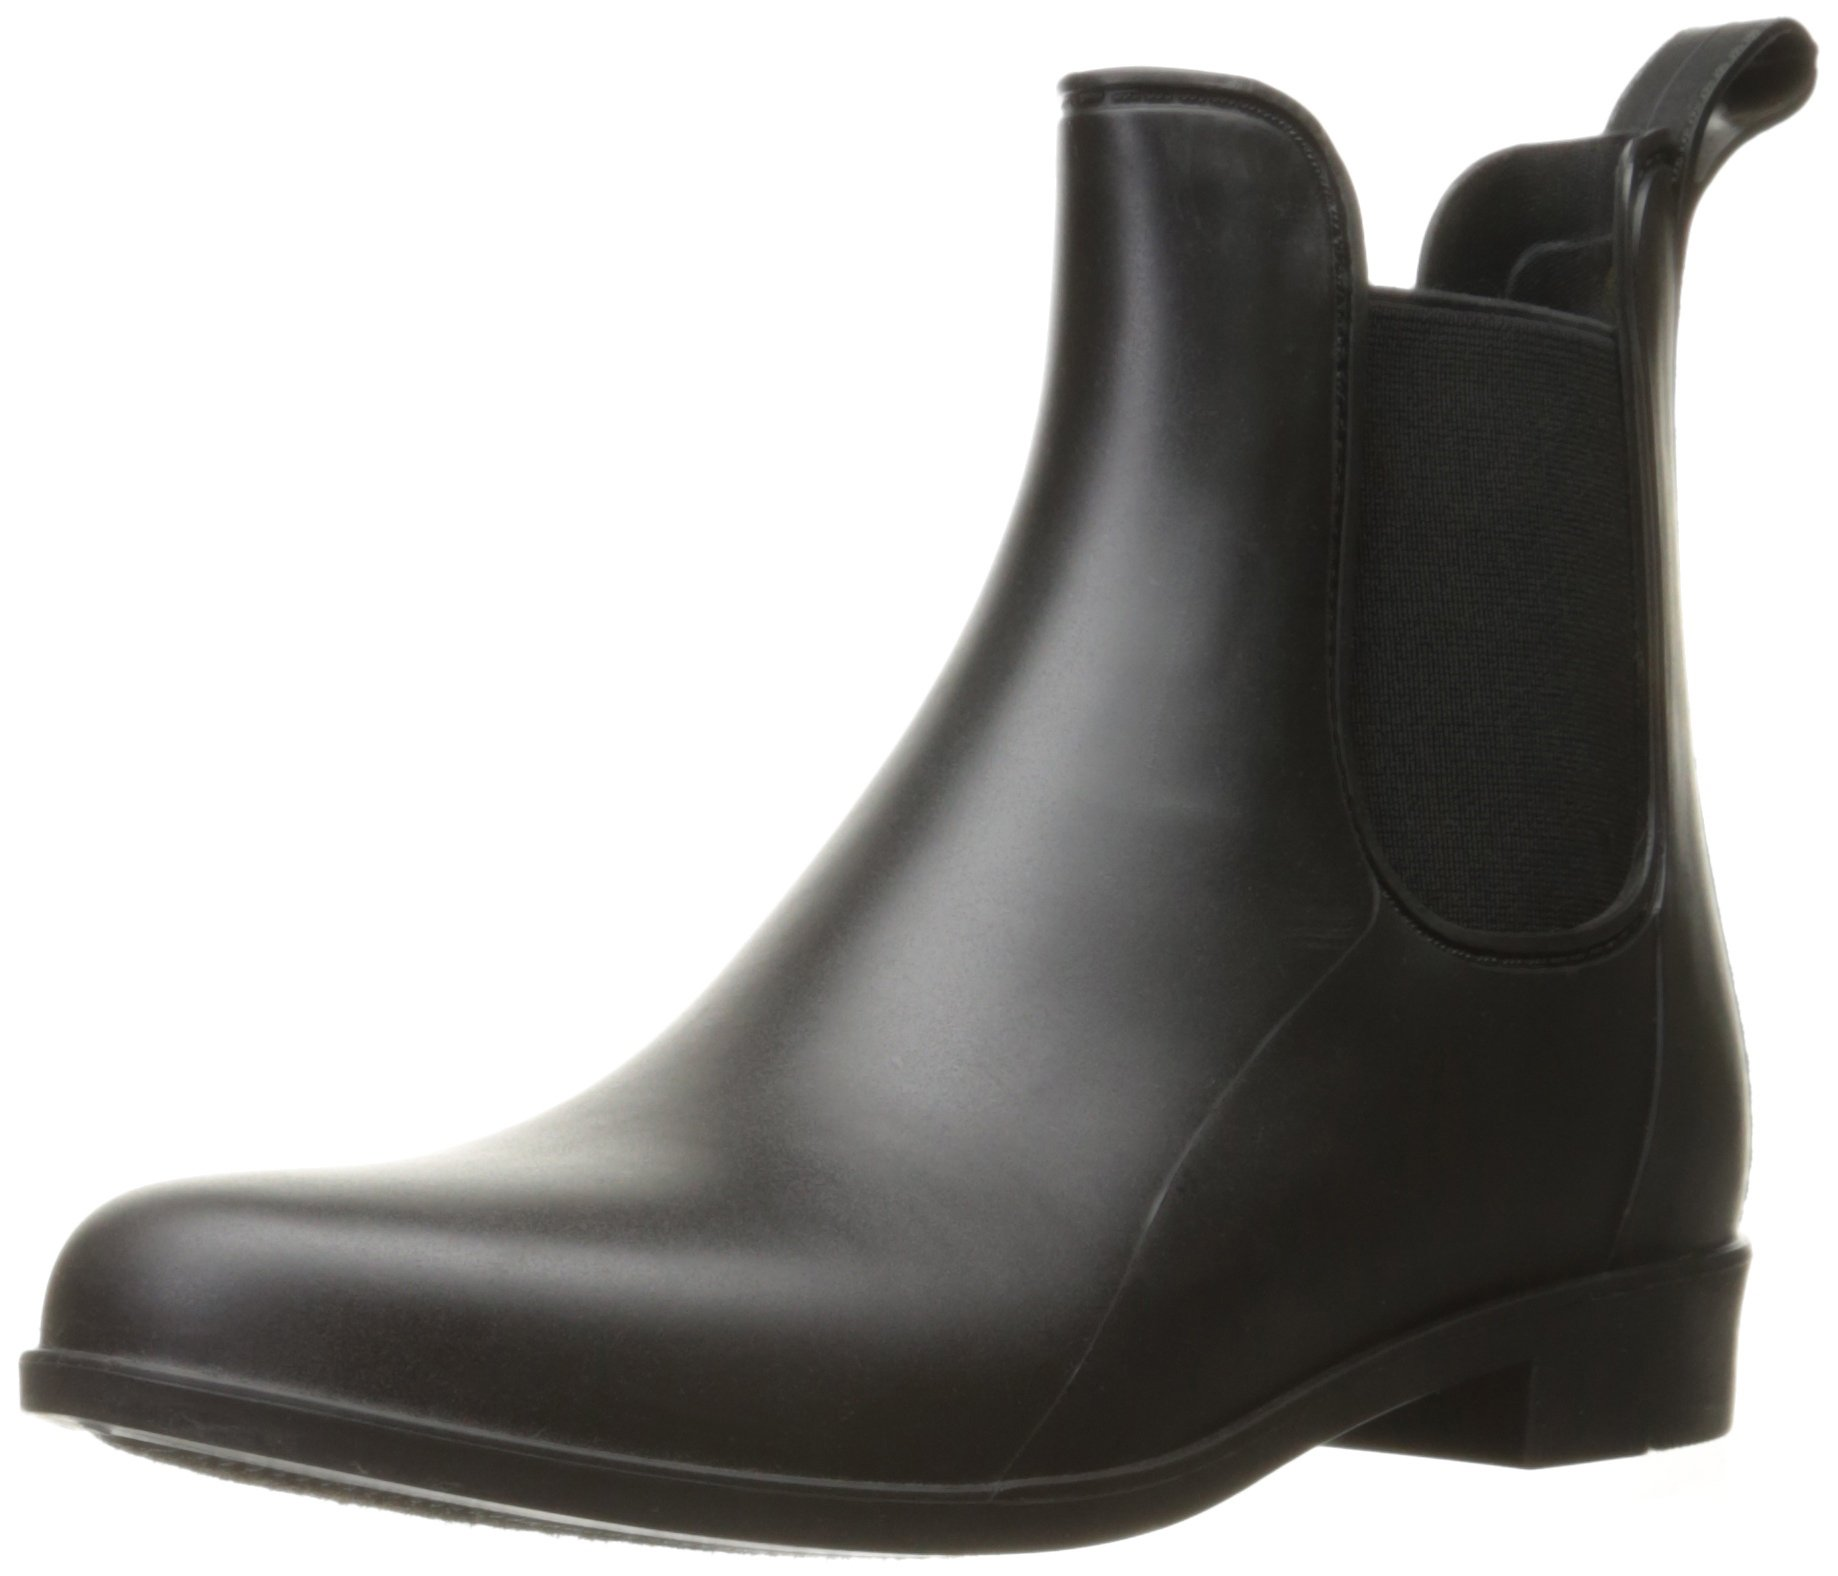 Sam Edelman Women's Tinsley Rain Boot, Black Matte, 9 M US by Sam Edelman (Image #1)